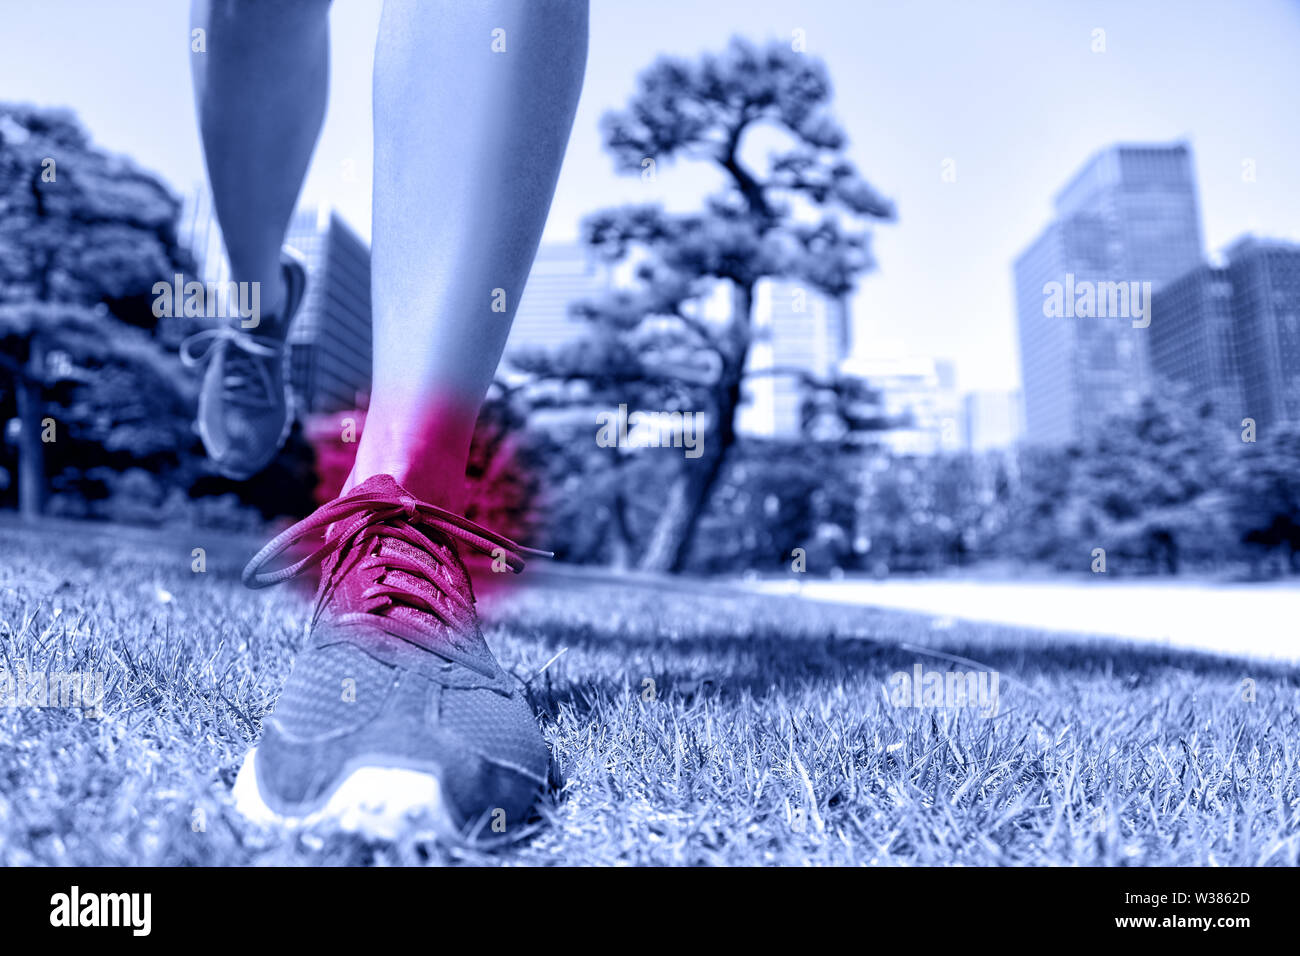 Sports injury - runner feet with ankle pain. Closeup of running shoes landing on soft grass with red circle showing hurting joints and ligaments caused by a fitness trauma. - Stock Image